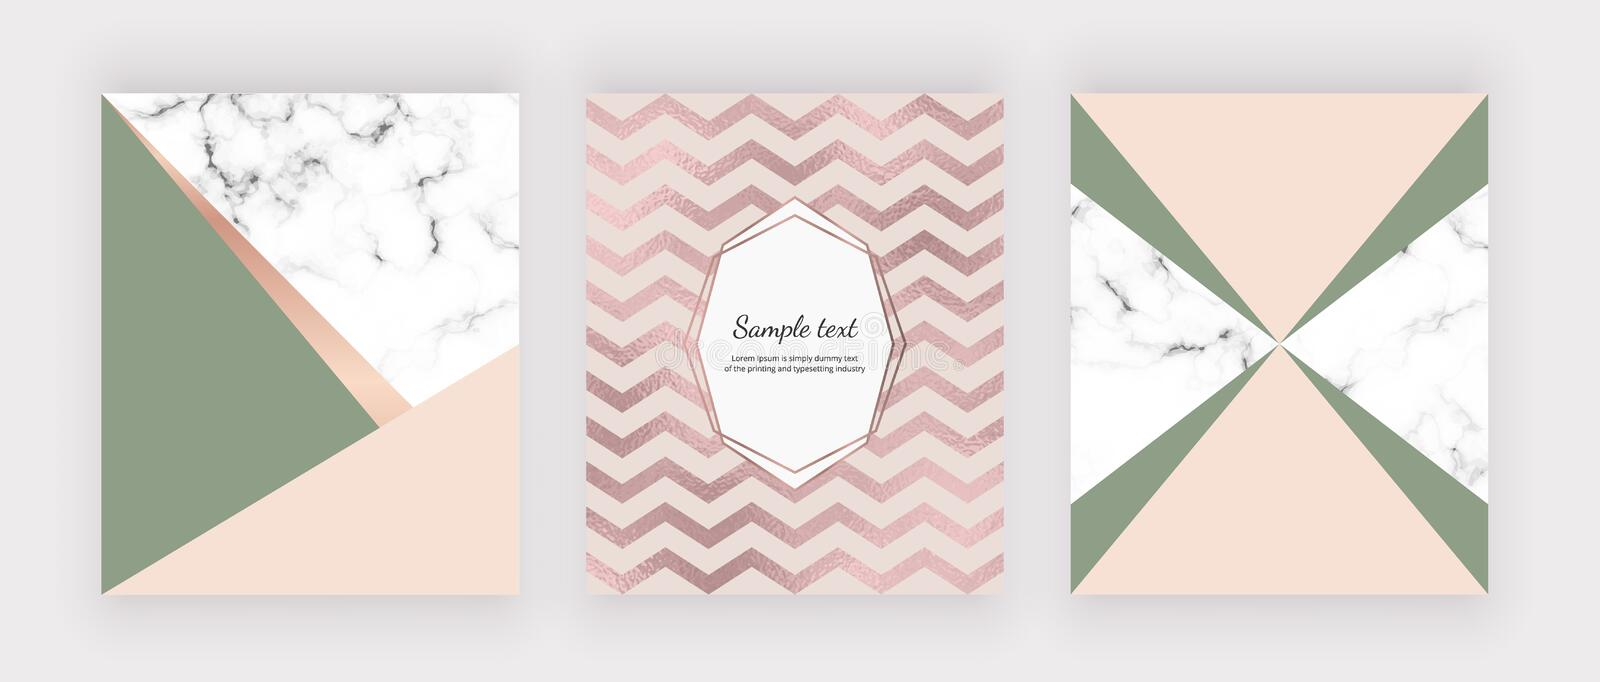 Marble geometric design with pink and green triangular, chevron foil texture. Modern templates for wedding invitation, banner, log stock illustration